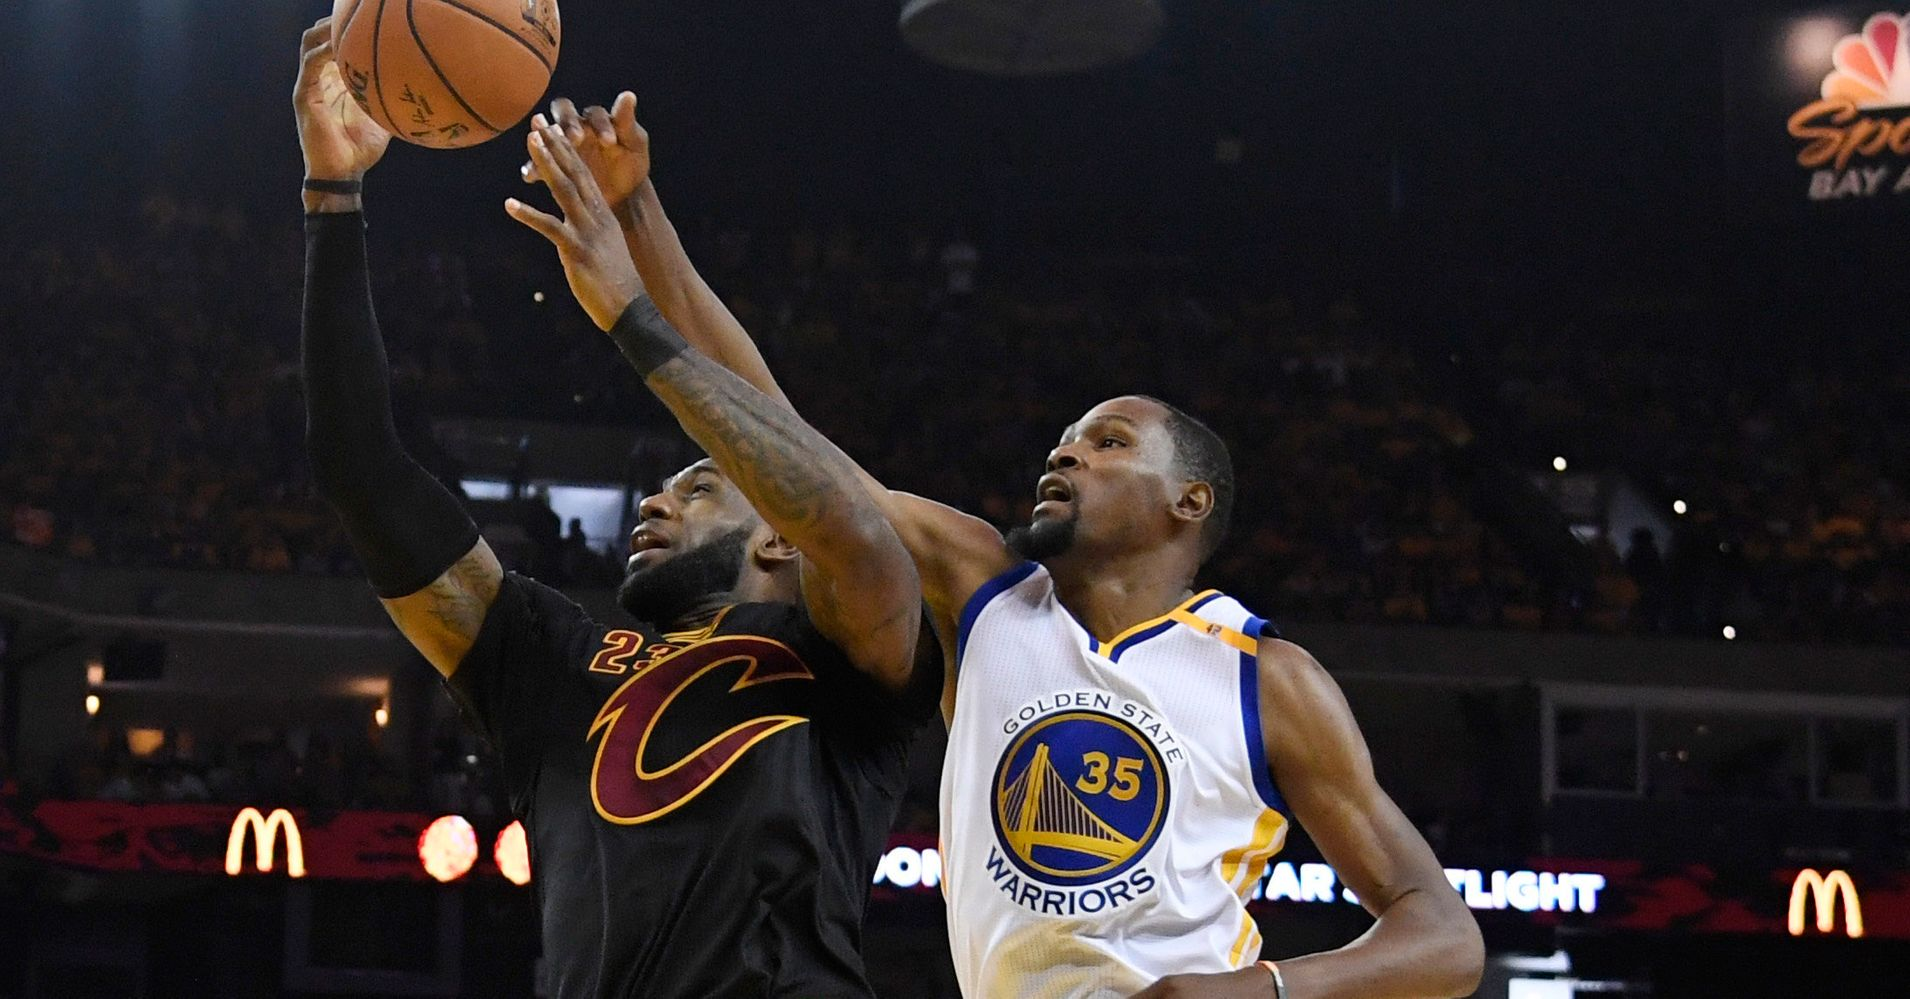 Someone Paid $133,000 For Warriors-Cavs Tickets | HuffPost